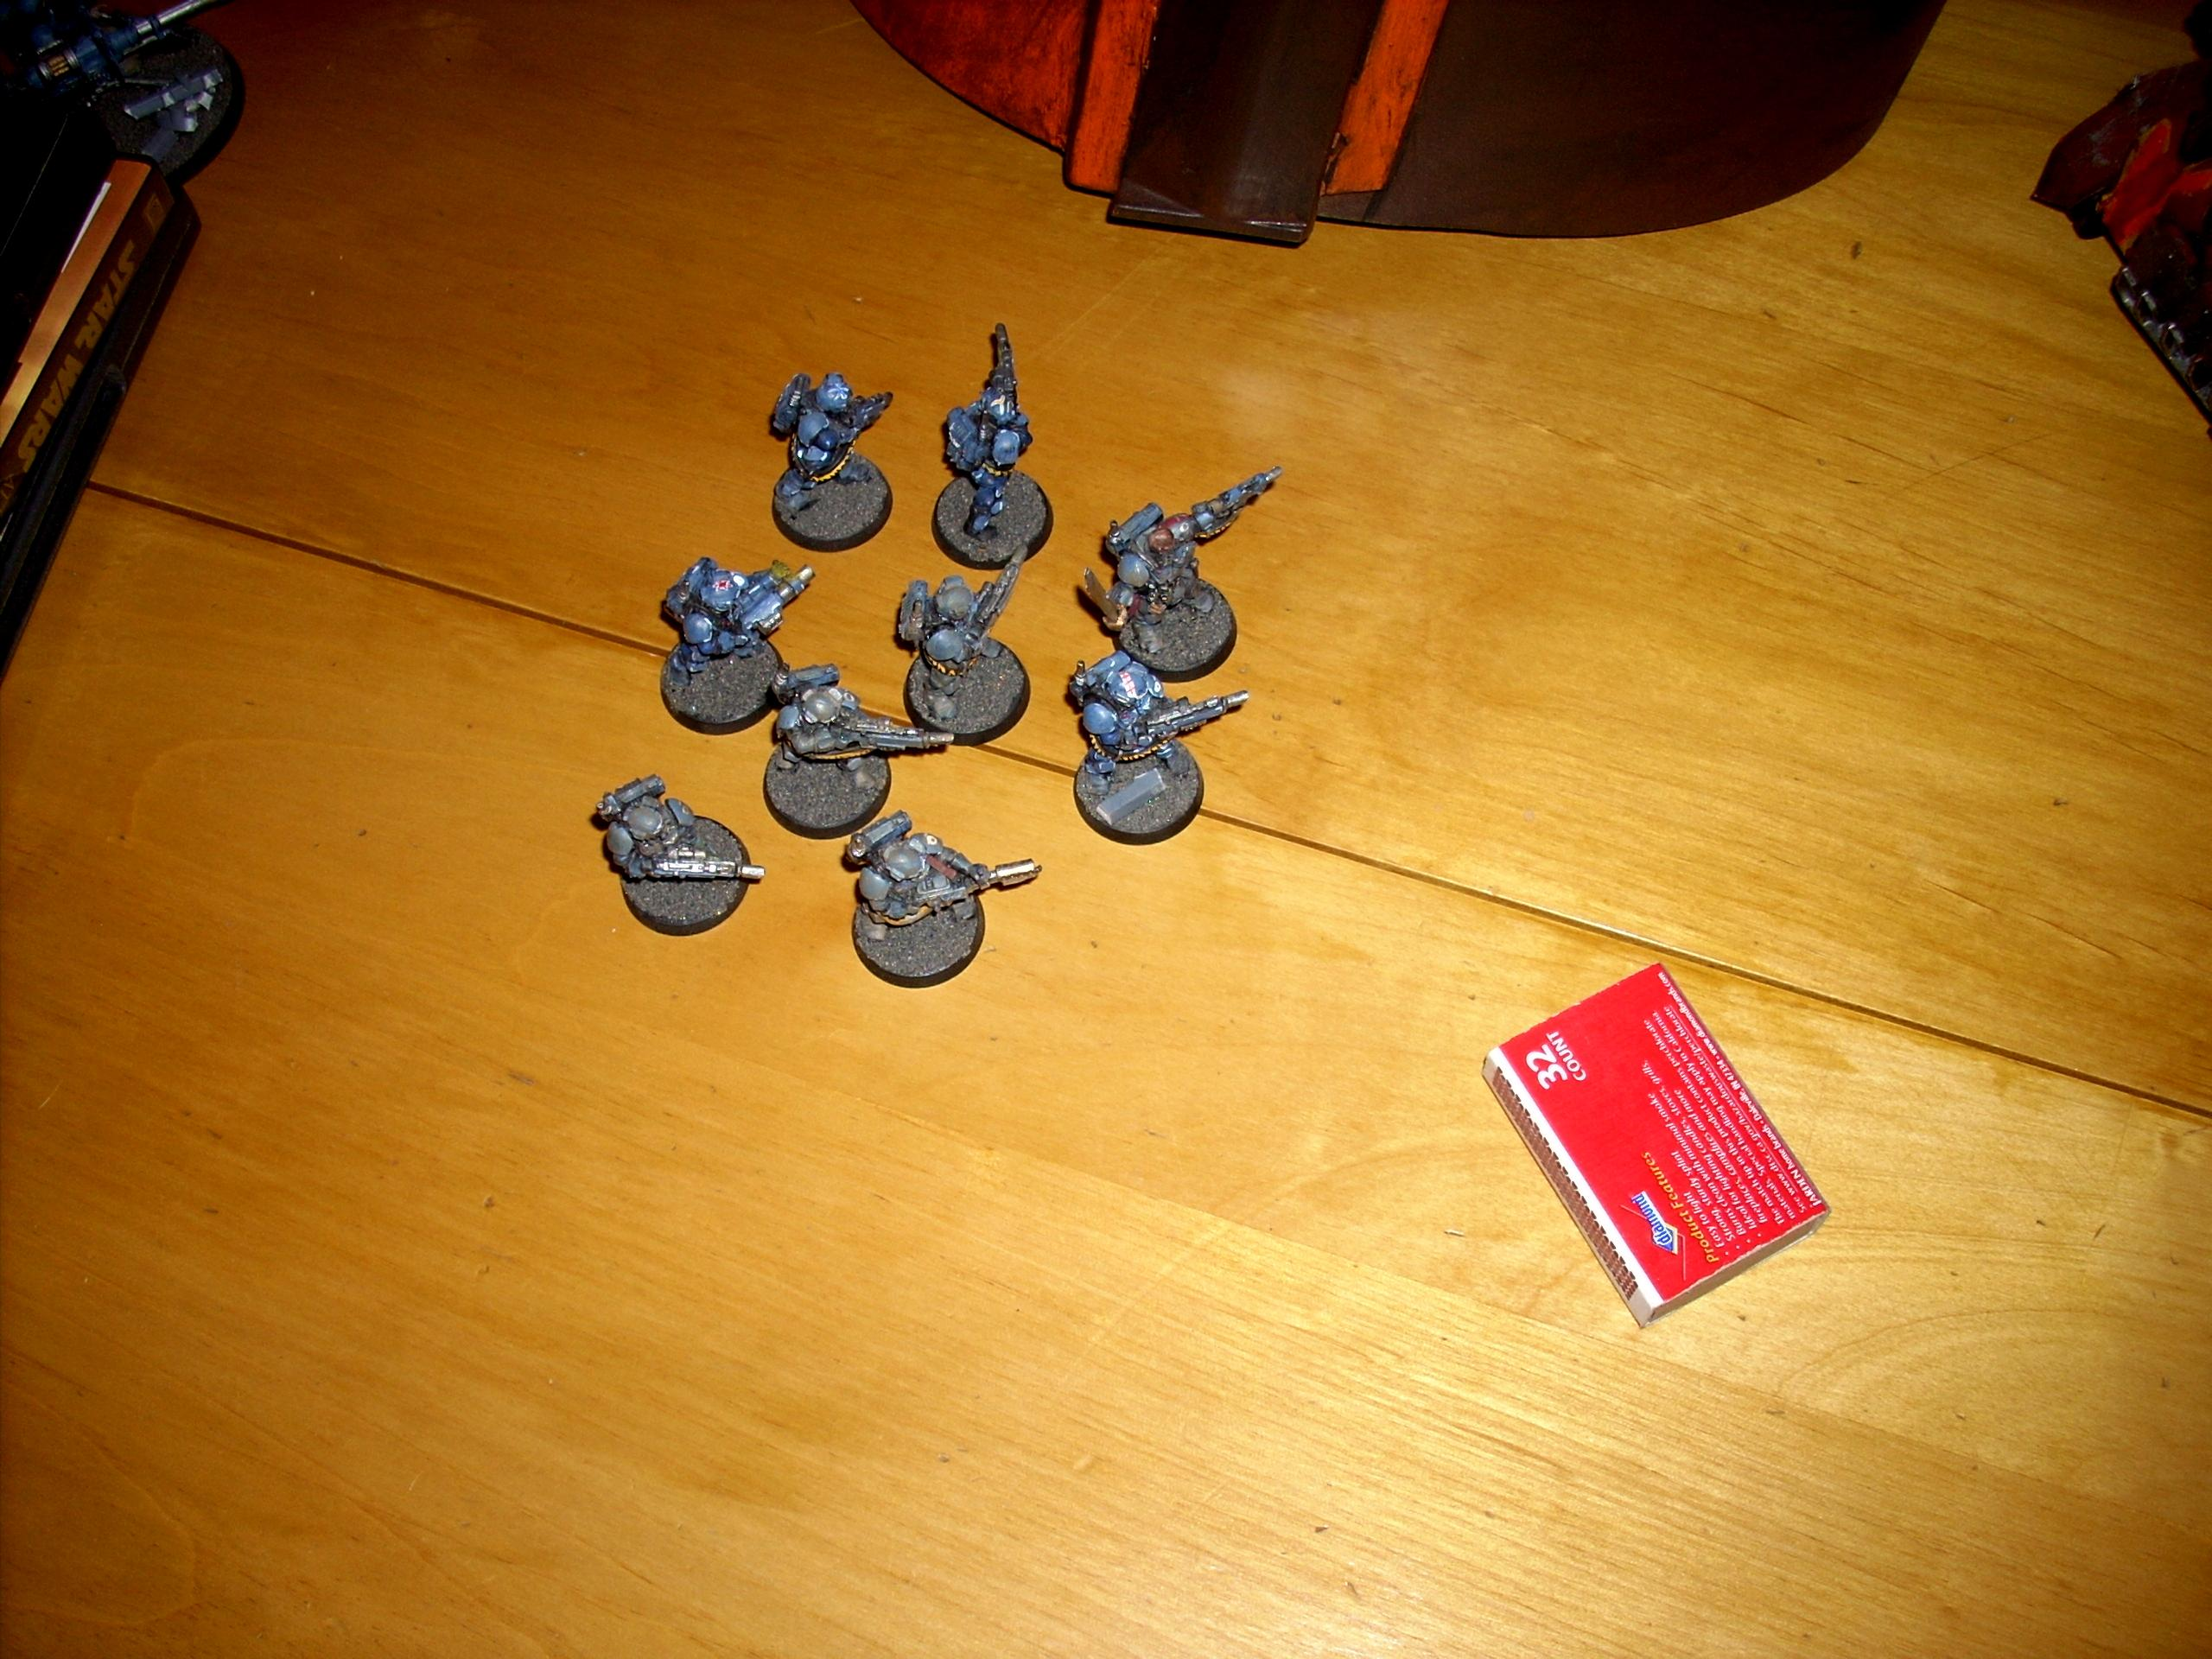 750, Battle, Battle Report, Guard, Imp, Imperial Guard, Orks, Orks Red, Report, Small, Whaag